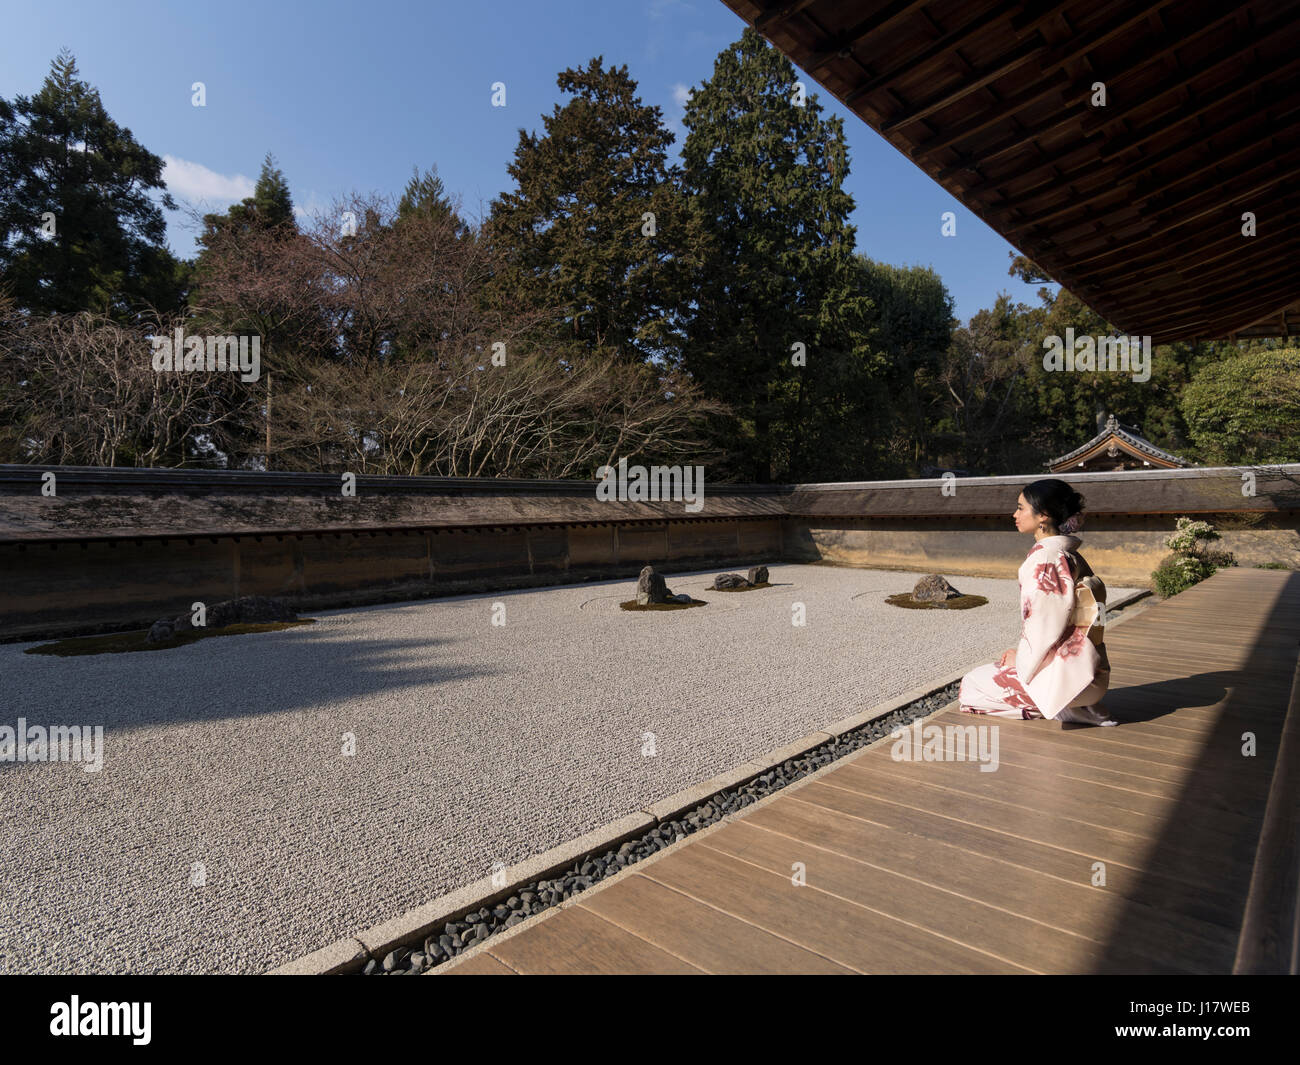 The rock garden at Ryoan-ji, Kyoto. One of the finest examples of a hire-niwa stone garden. Zen meditation. - Stock Image